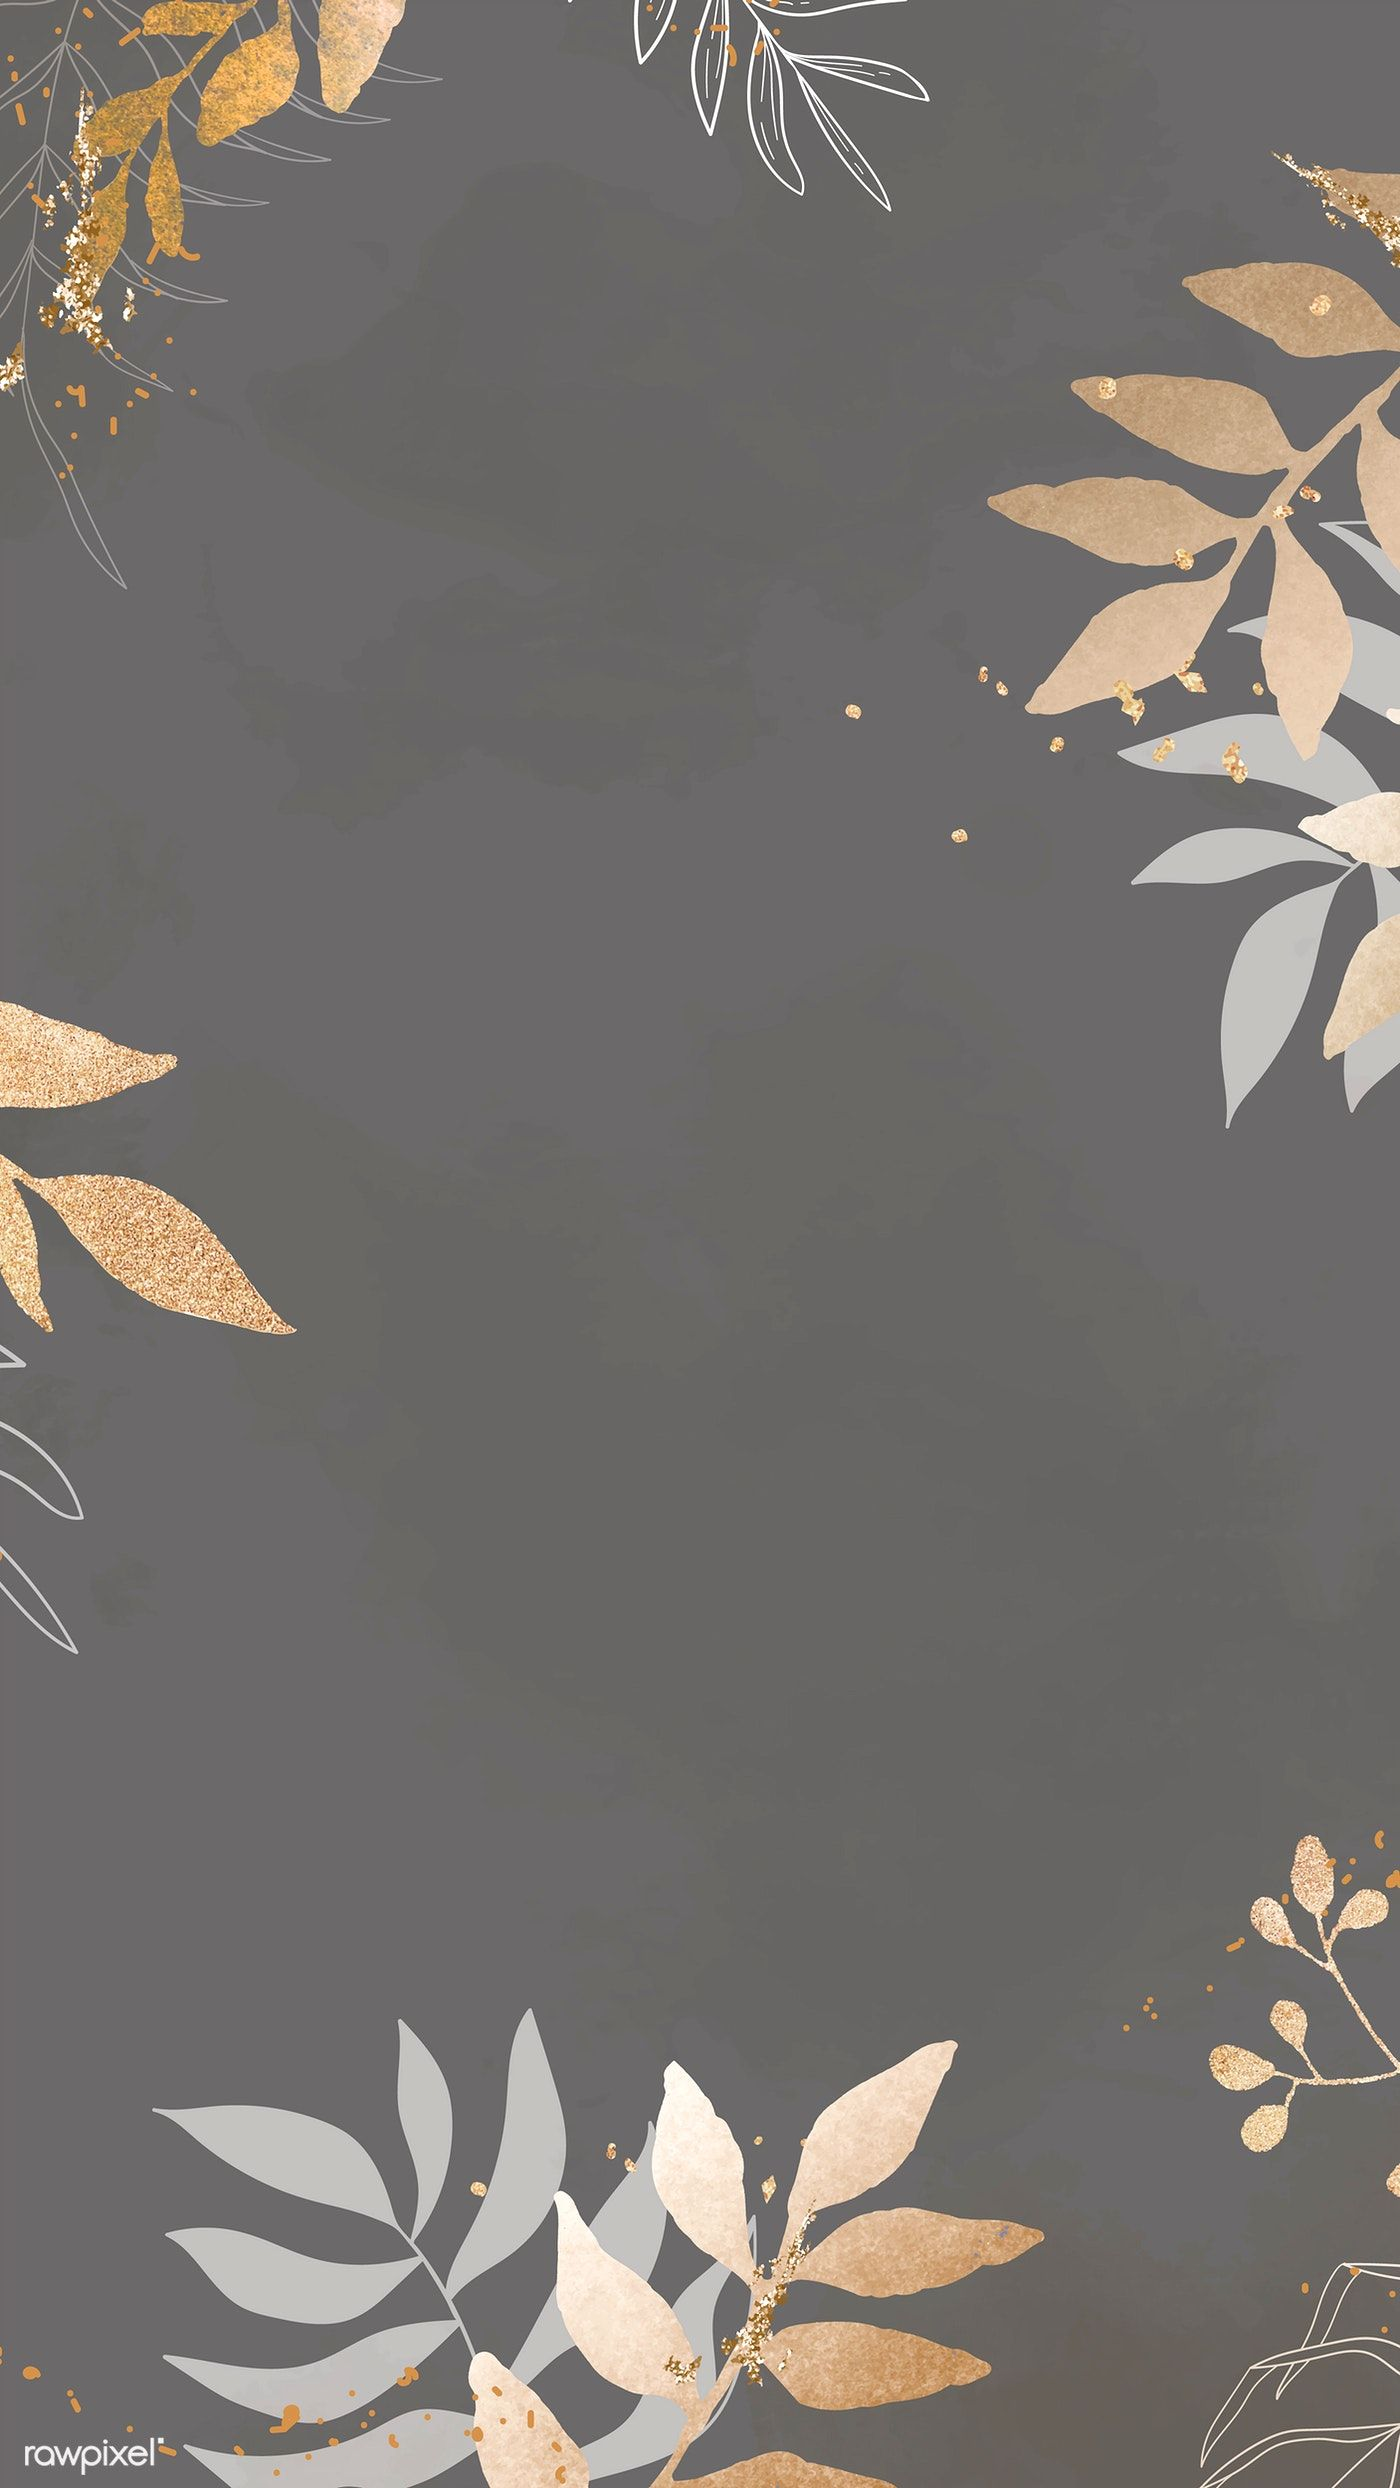 Download premium vector of Christmas patterned on gray background mobile